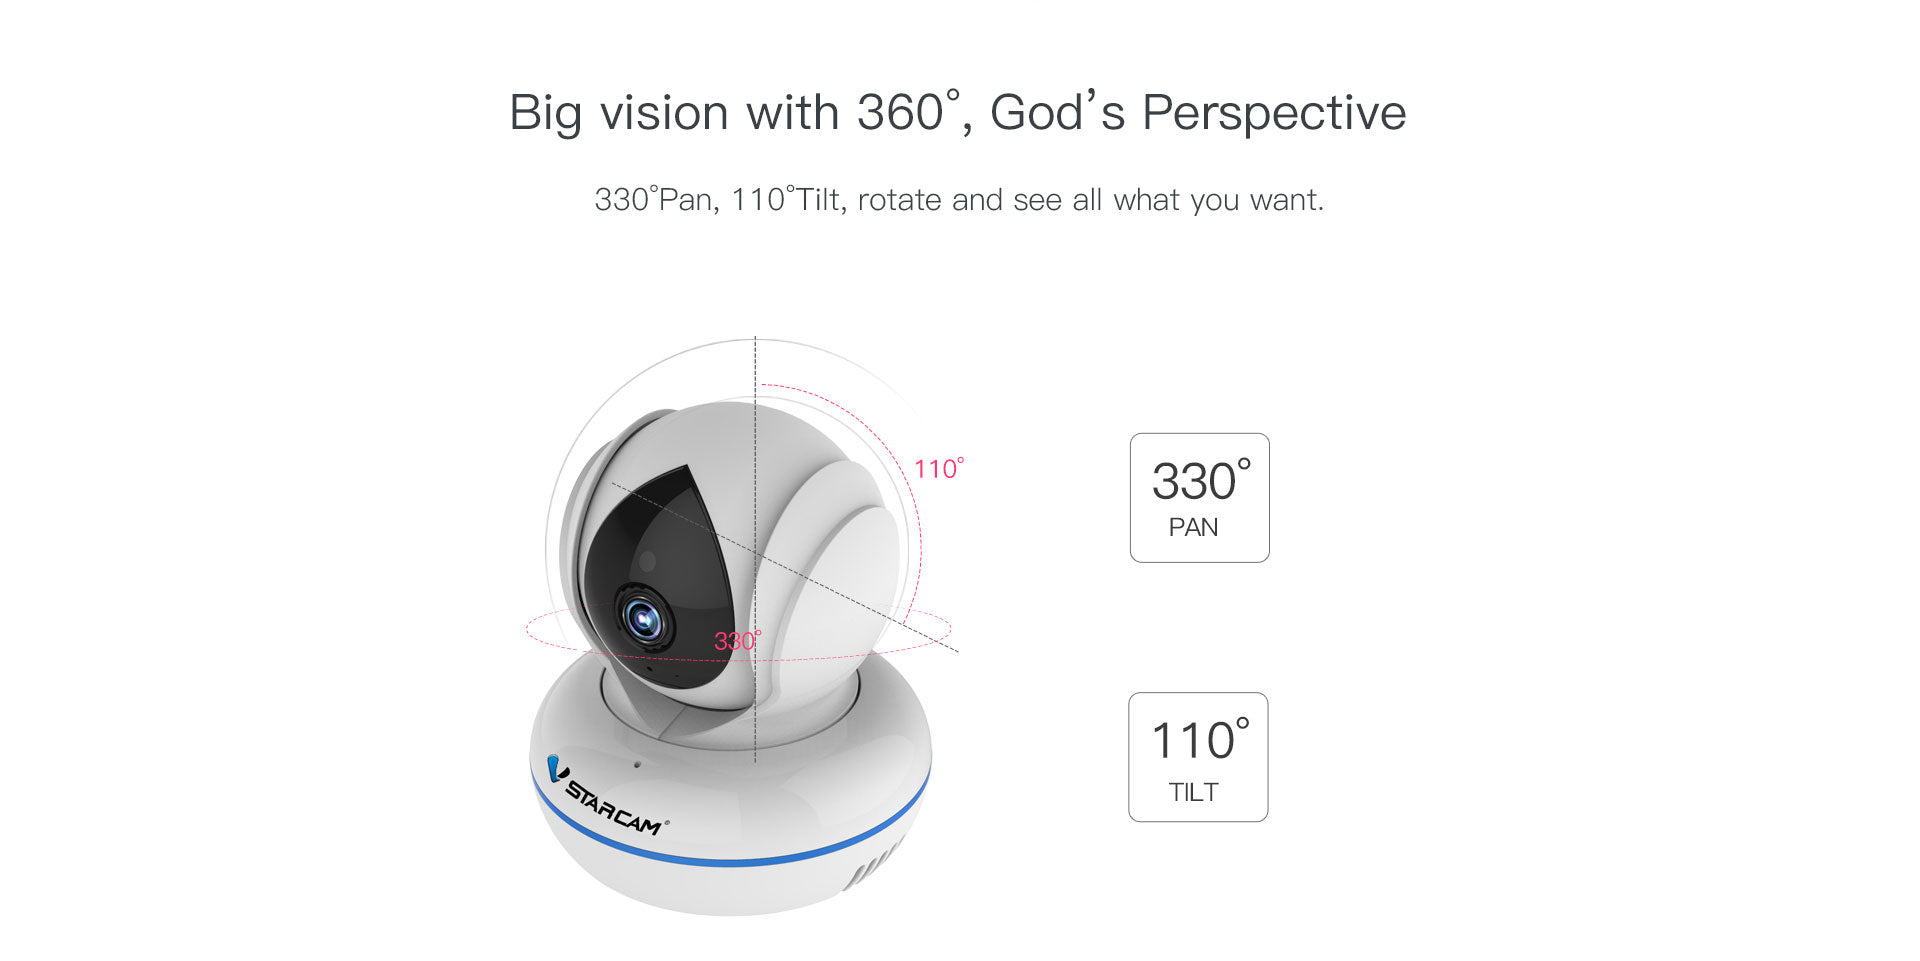 360 degree network camera